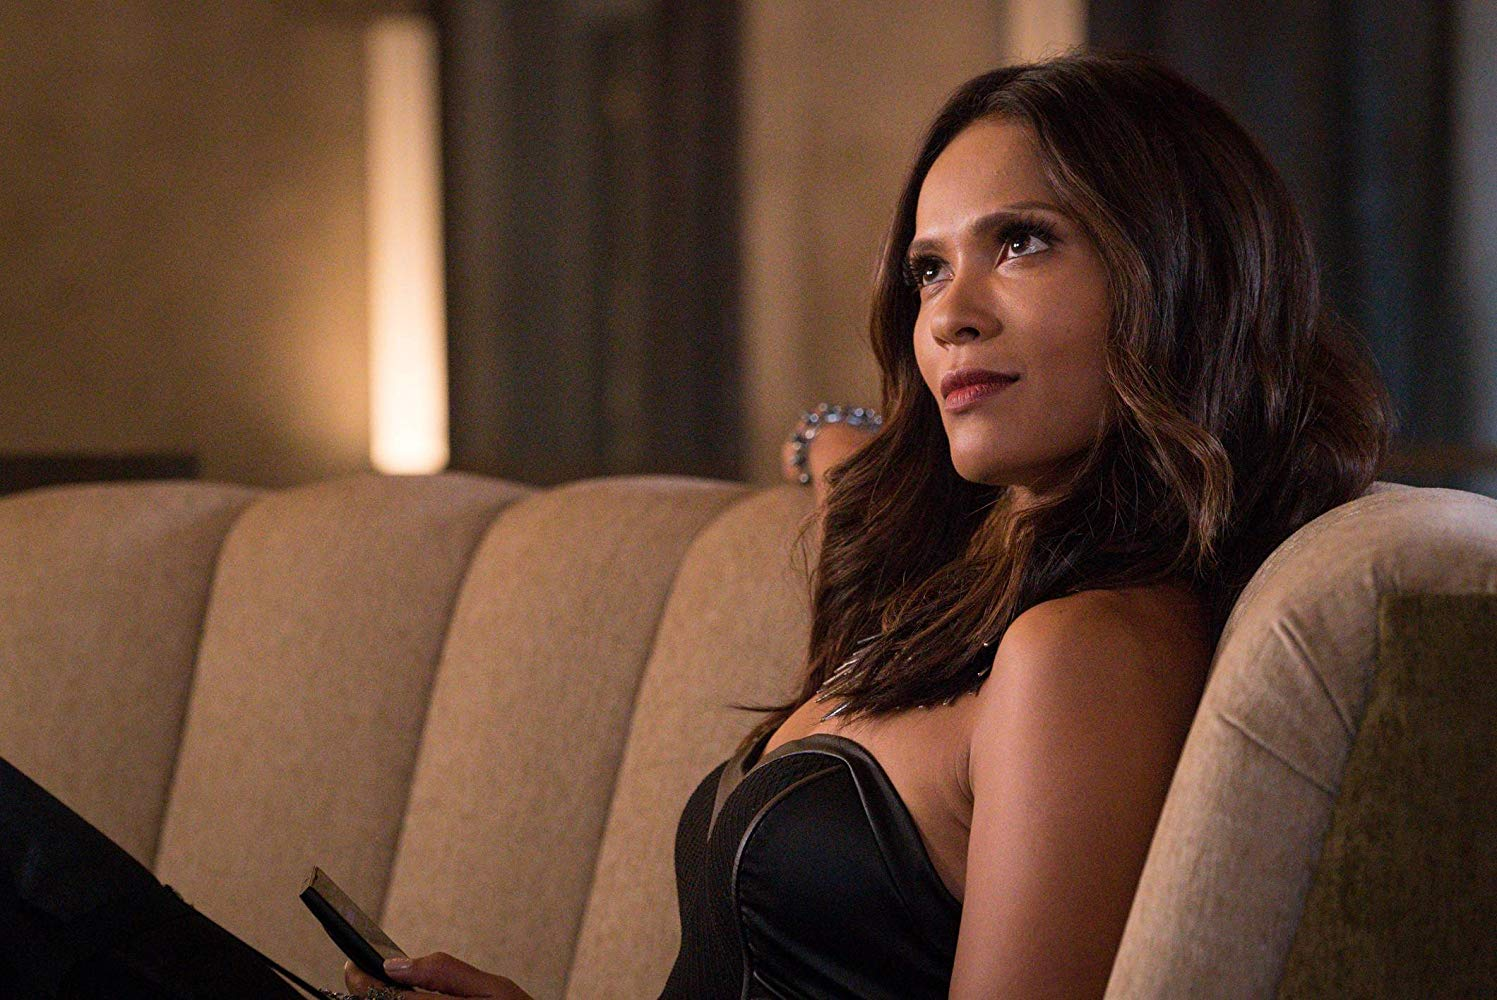 Mazikeen on Lucifer's couch